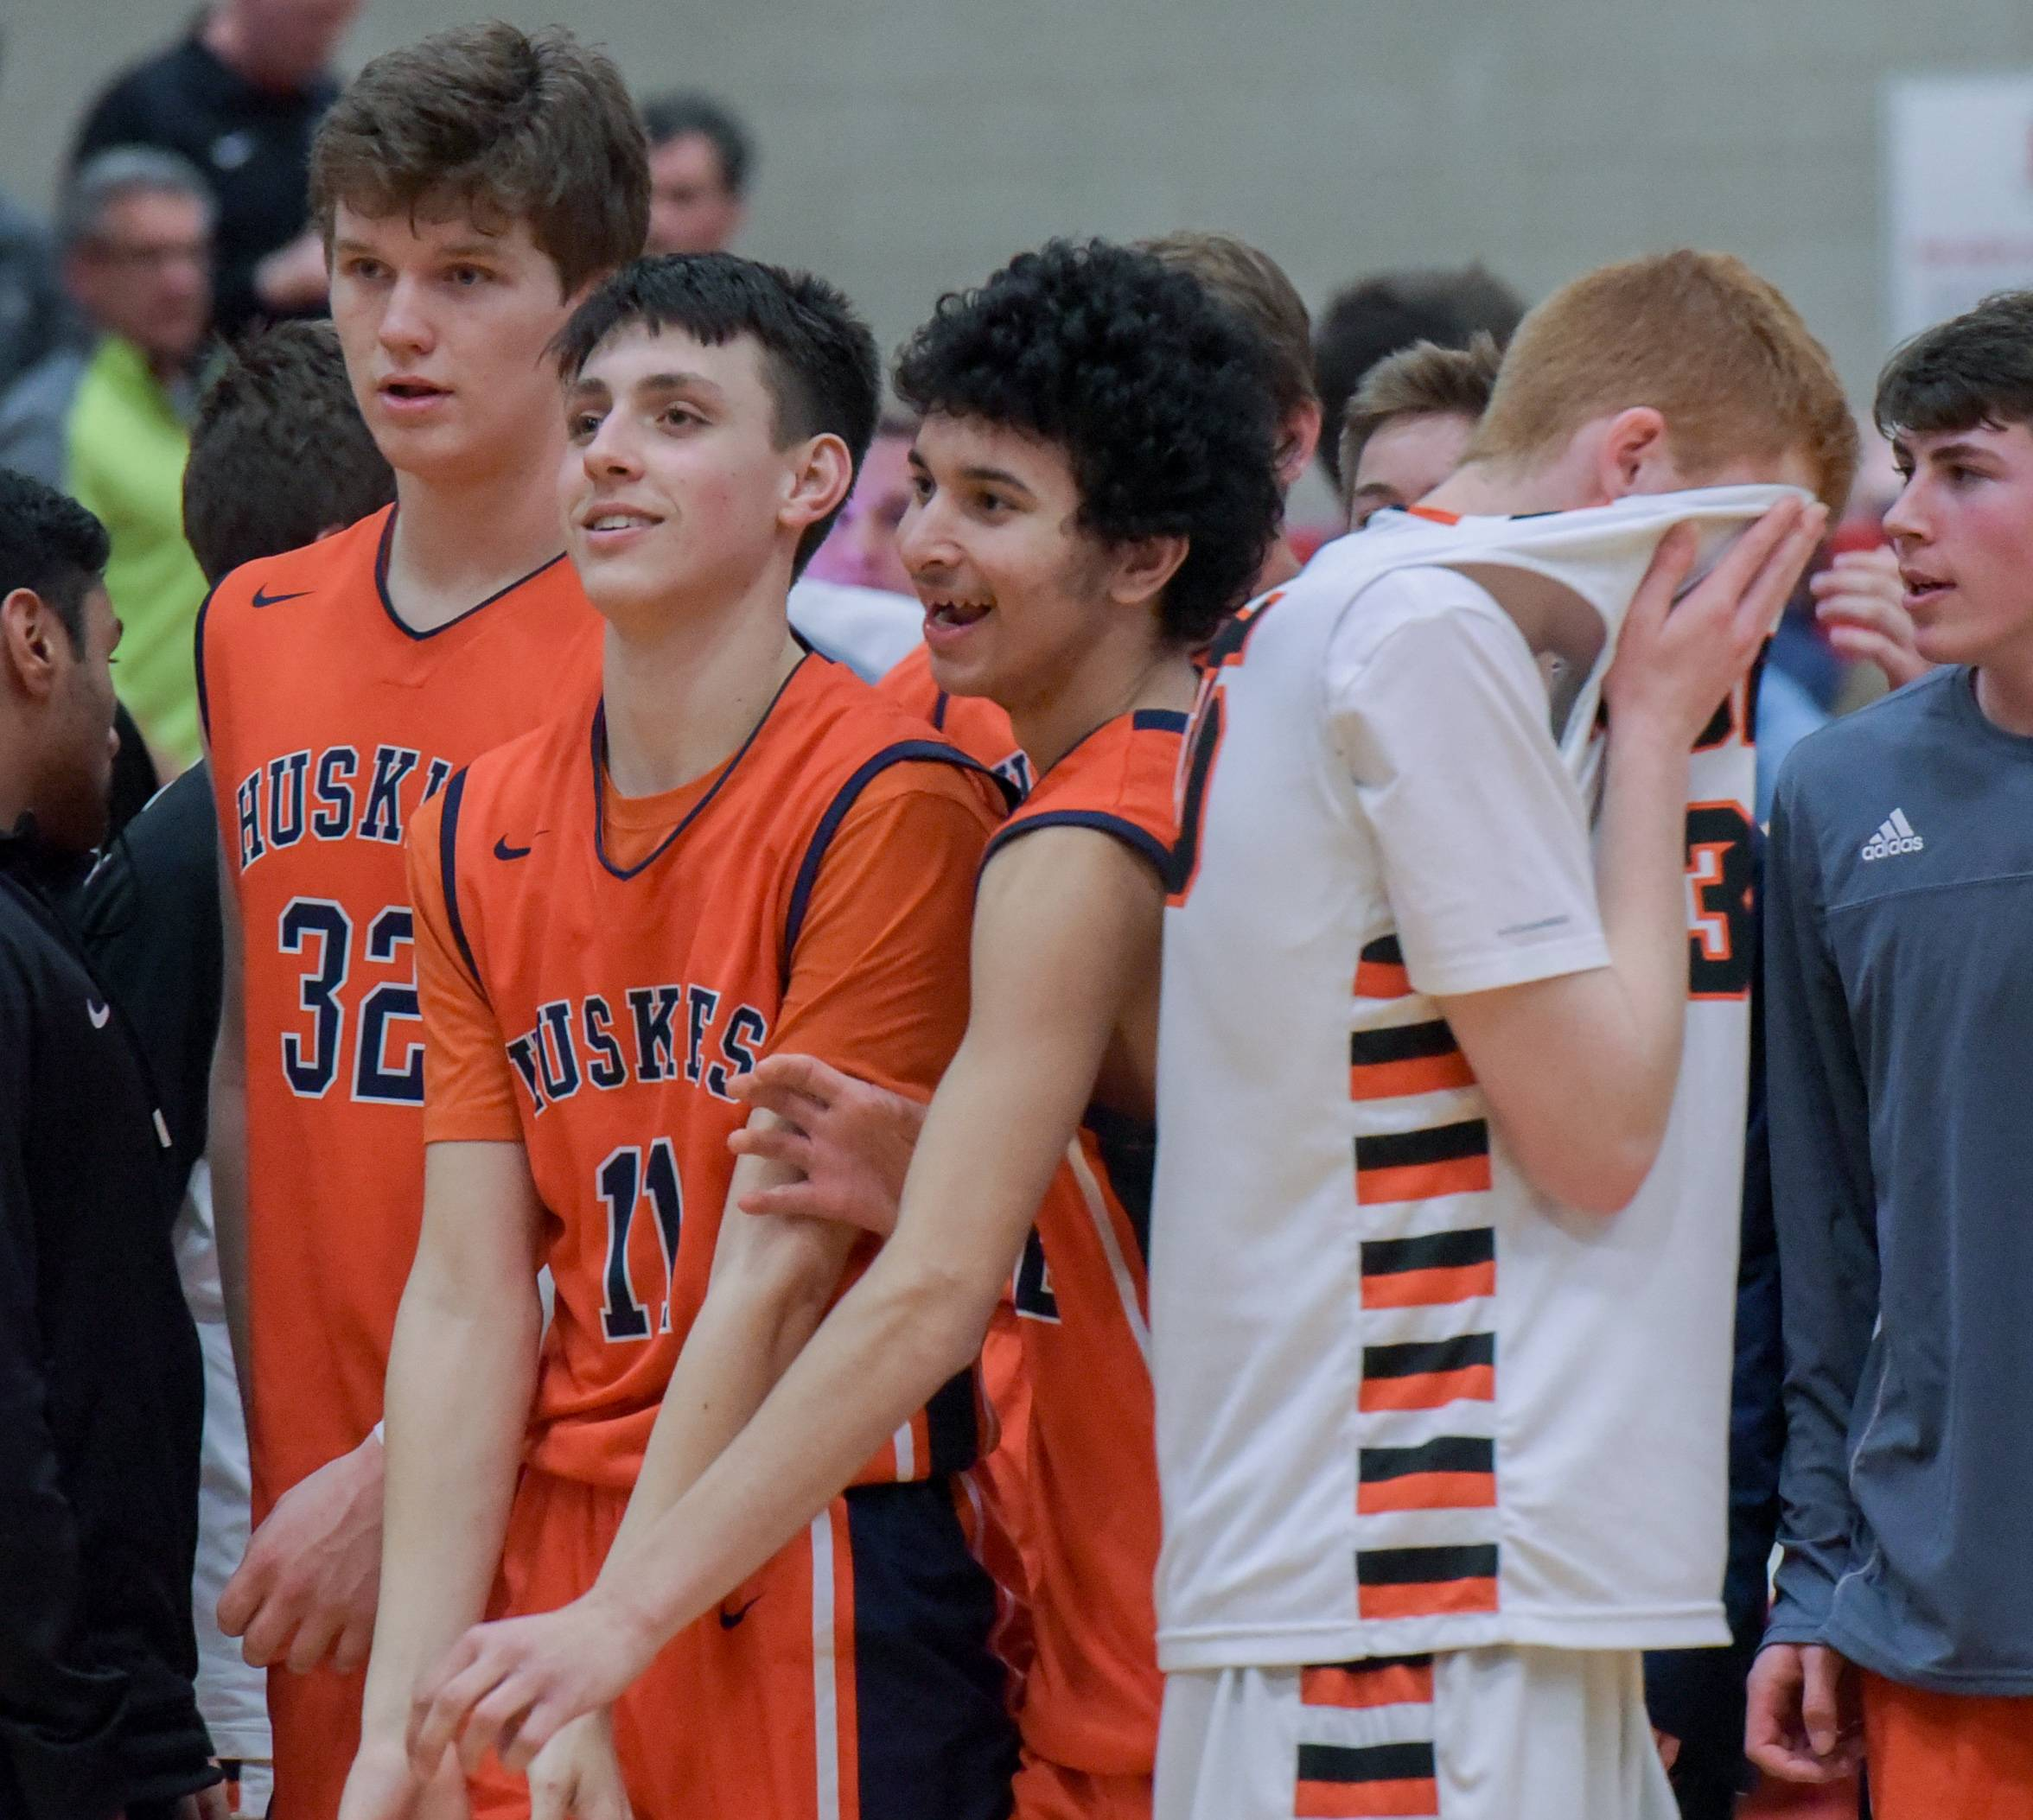 Images: Wheaton Warrenville South vs. Naperville North boys basketball